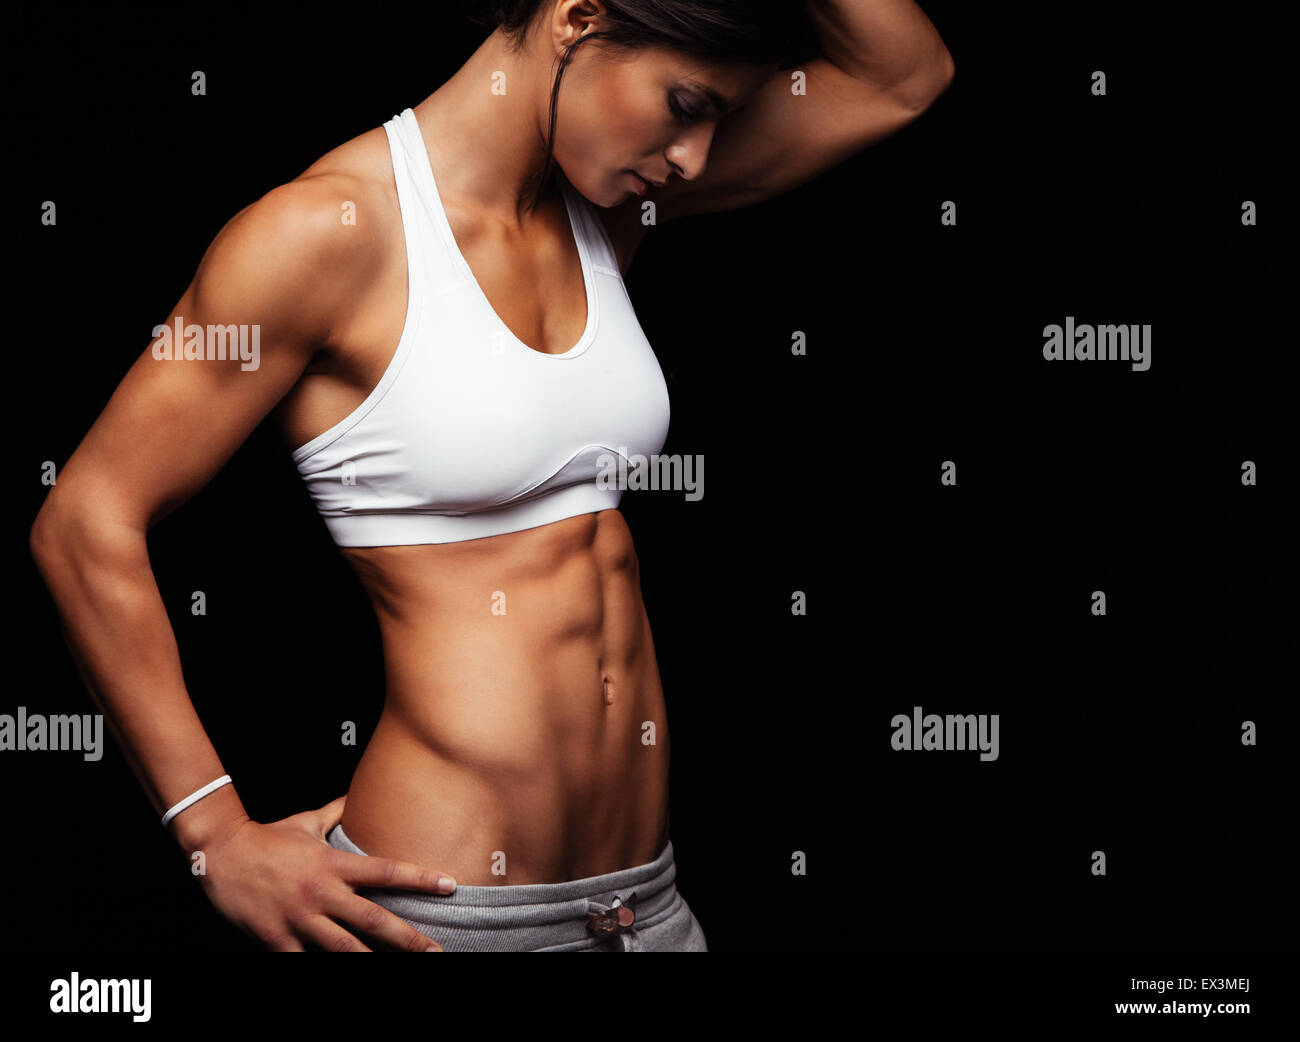 Cropped shot of fit woman's torso with her hands on hips. Female with perfect abdomen muscles posing on black - Stock Image